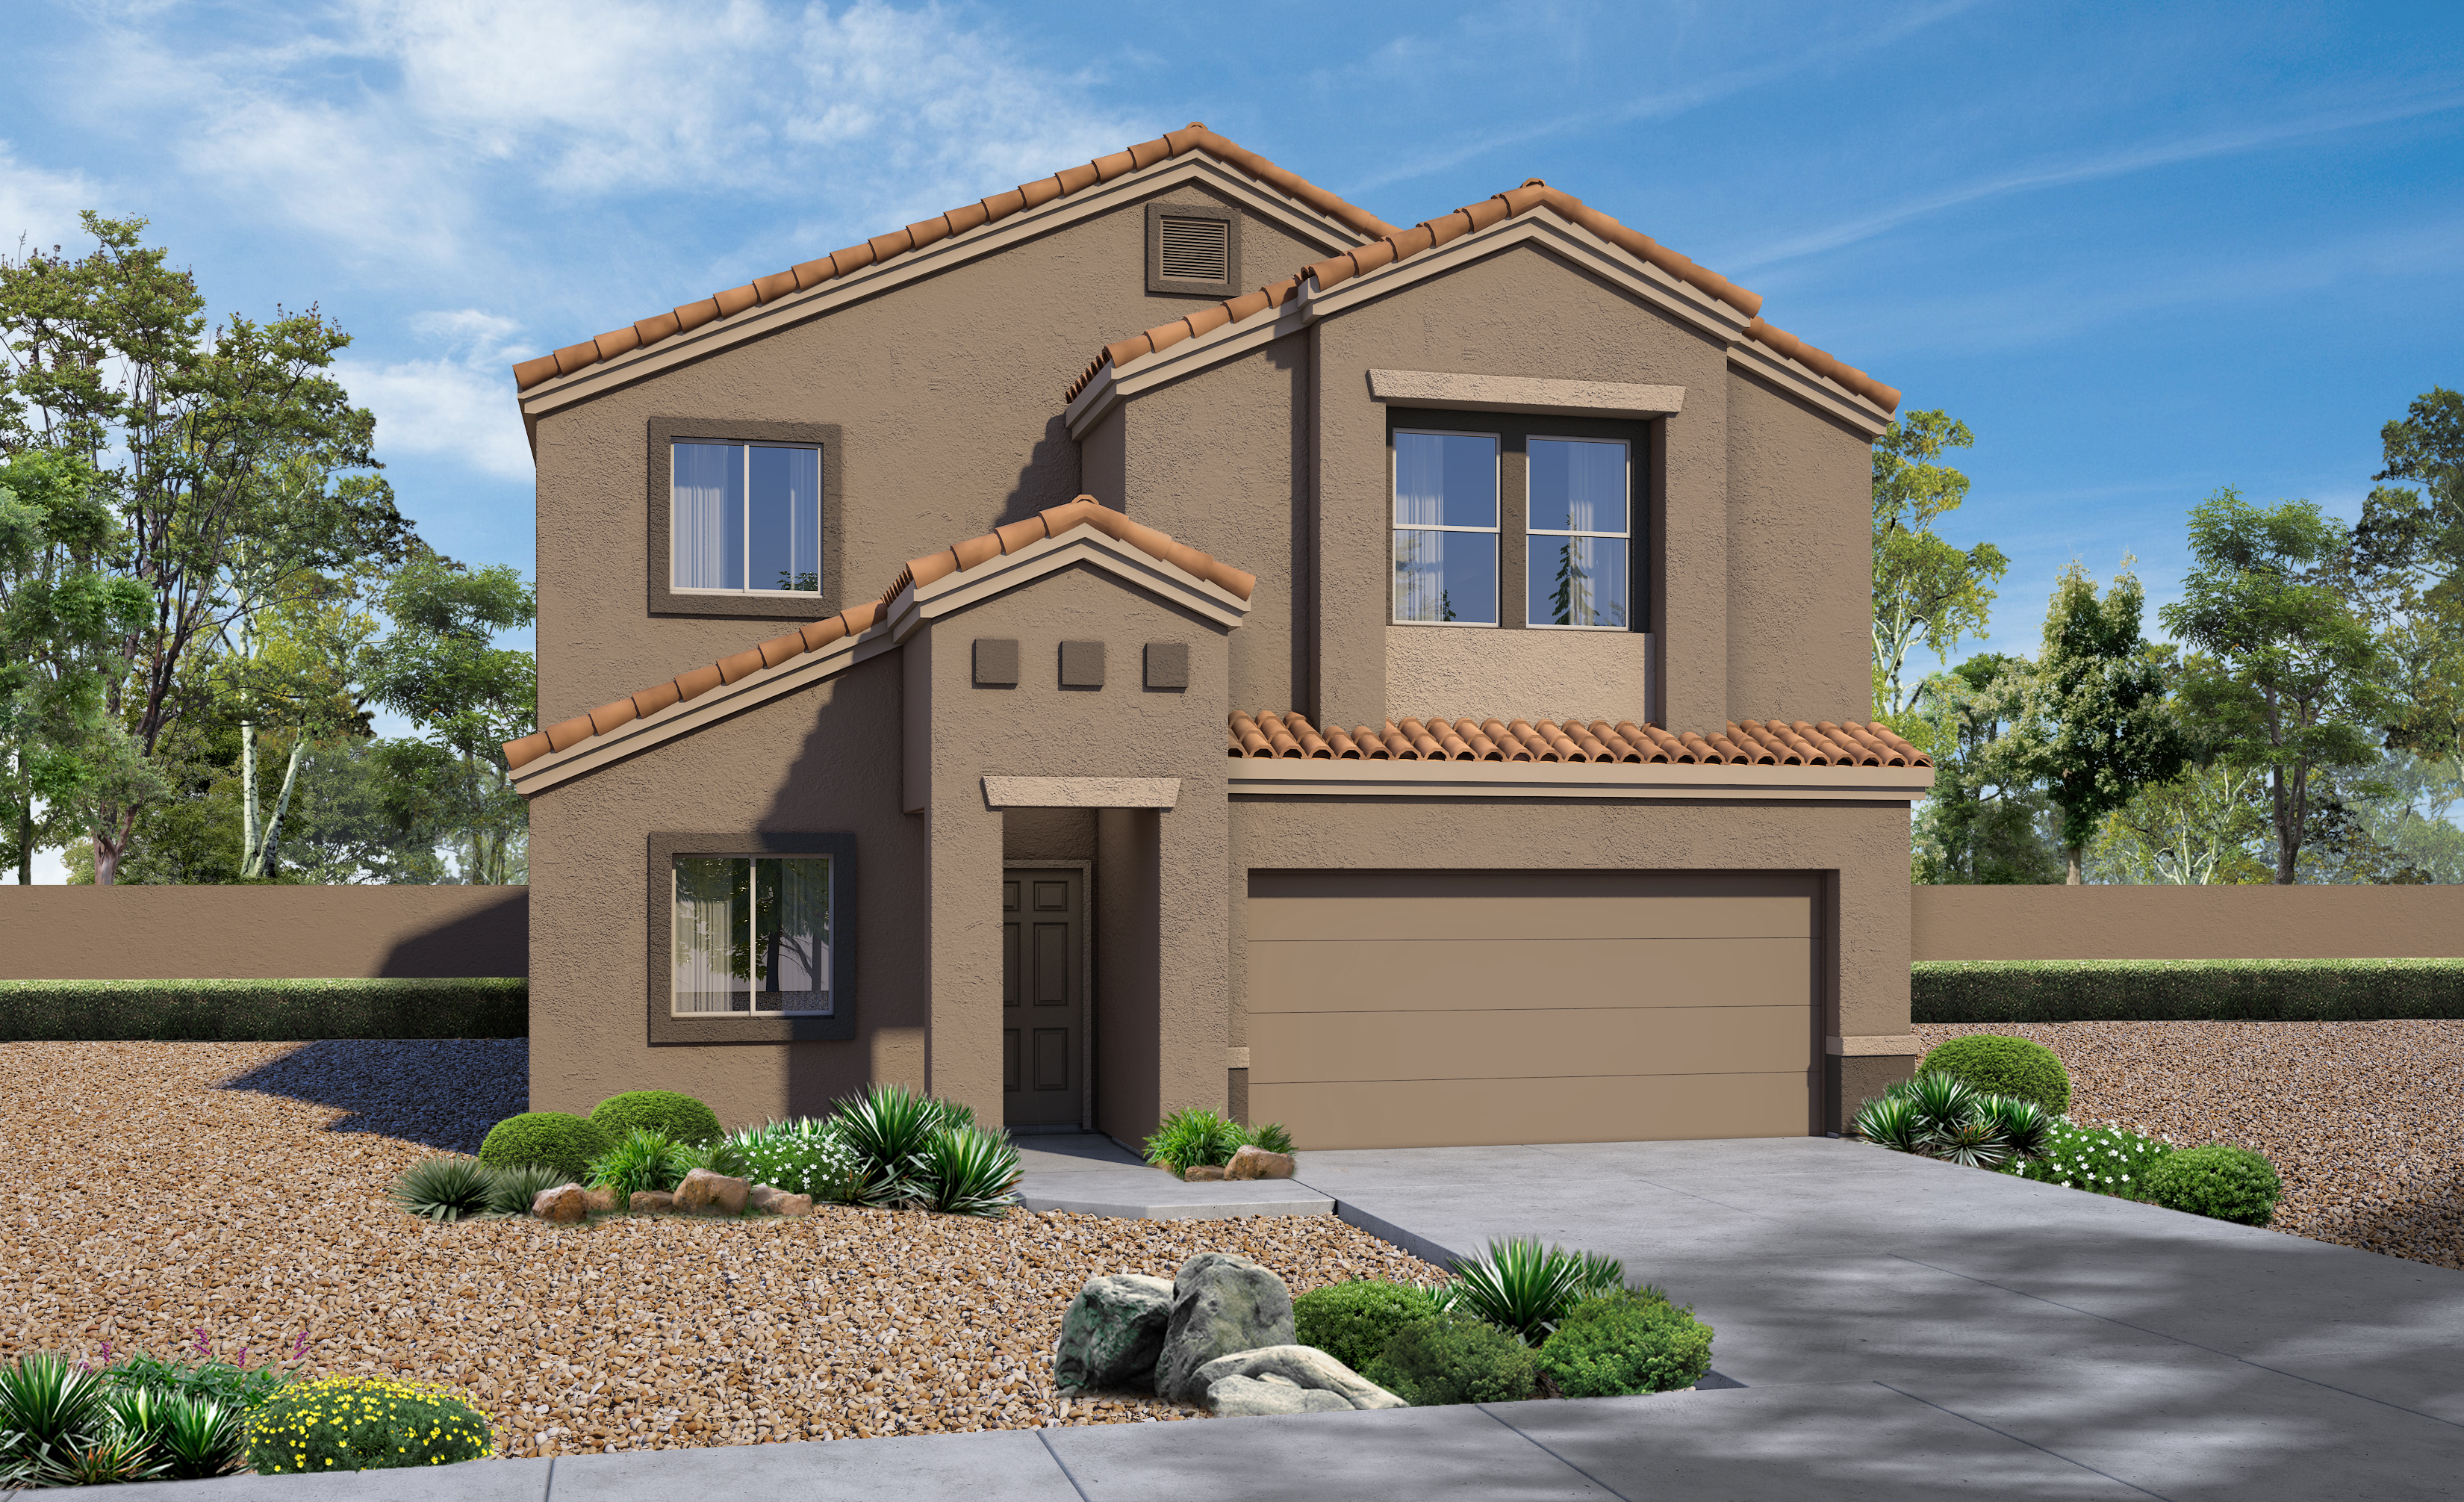 D.R. Horton Sycamore Vista Bronco - Plan 3582 Single Family Home for Sale